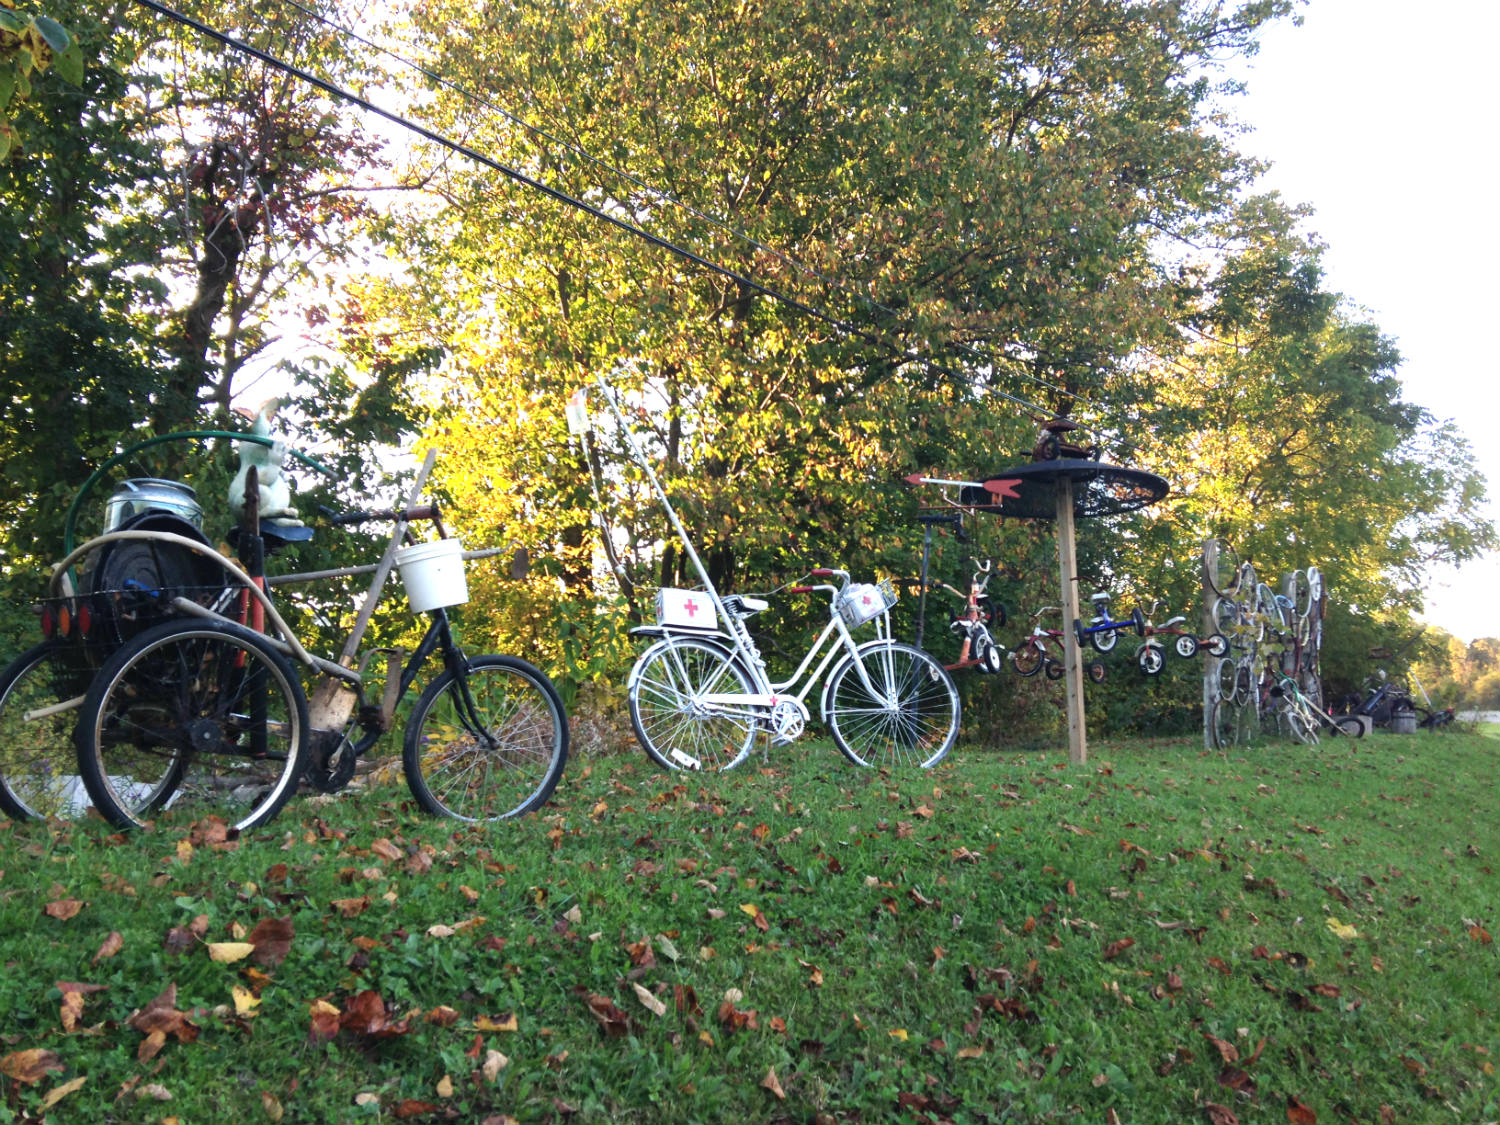 Bicycle Art and Yard Sculptures - Palmyra, NY